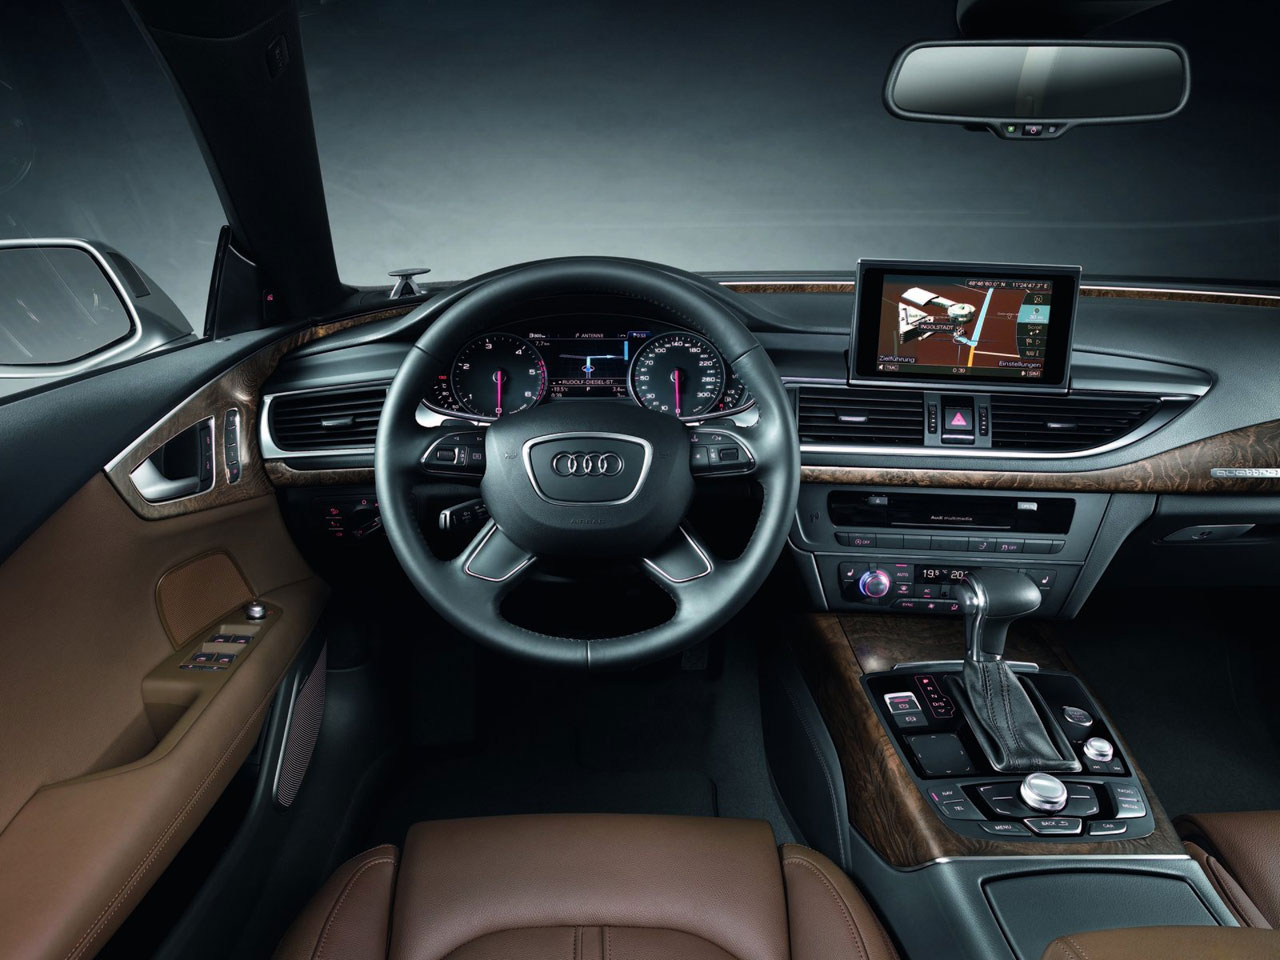 Audi A7 Sportback Interior - Car Body Design